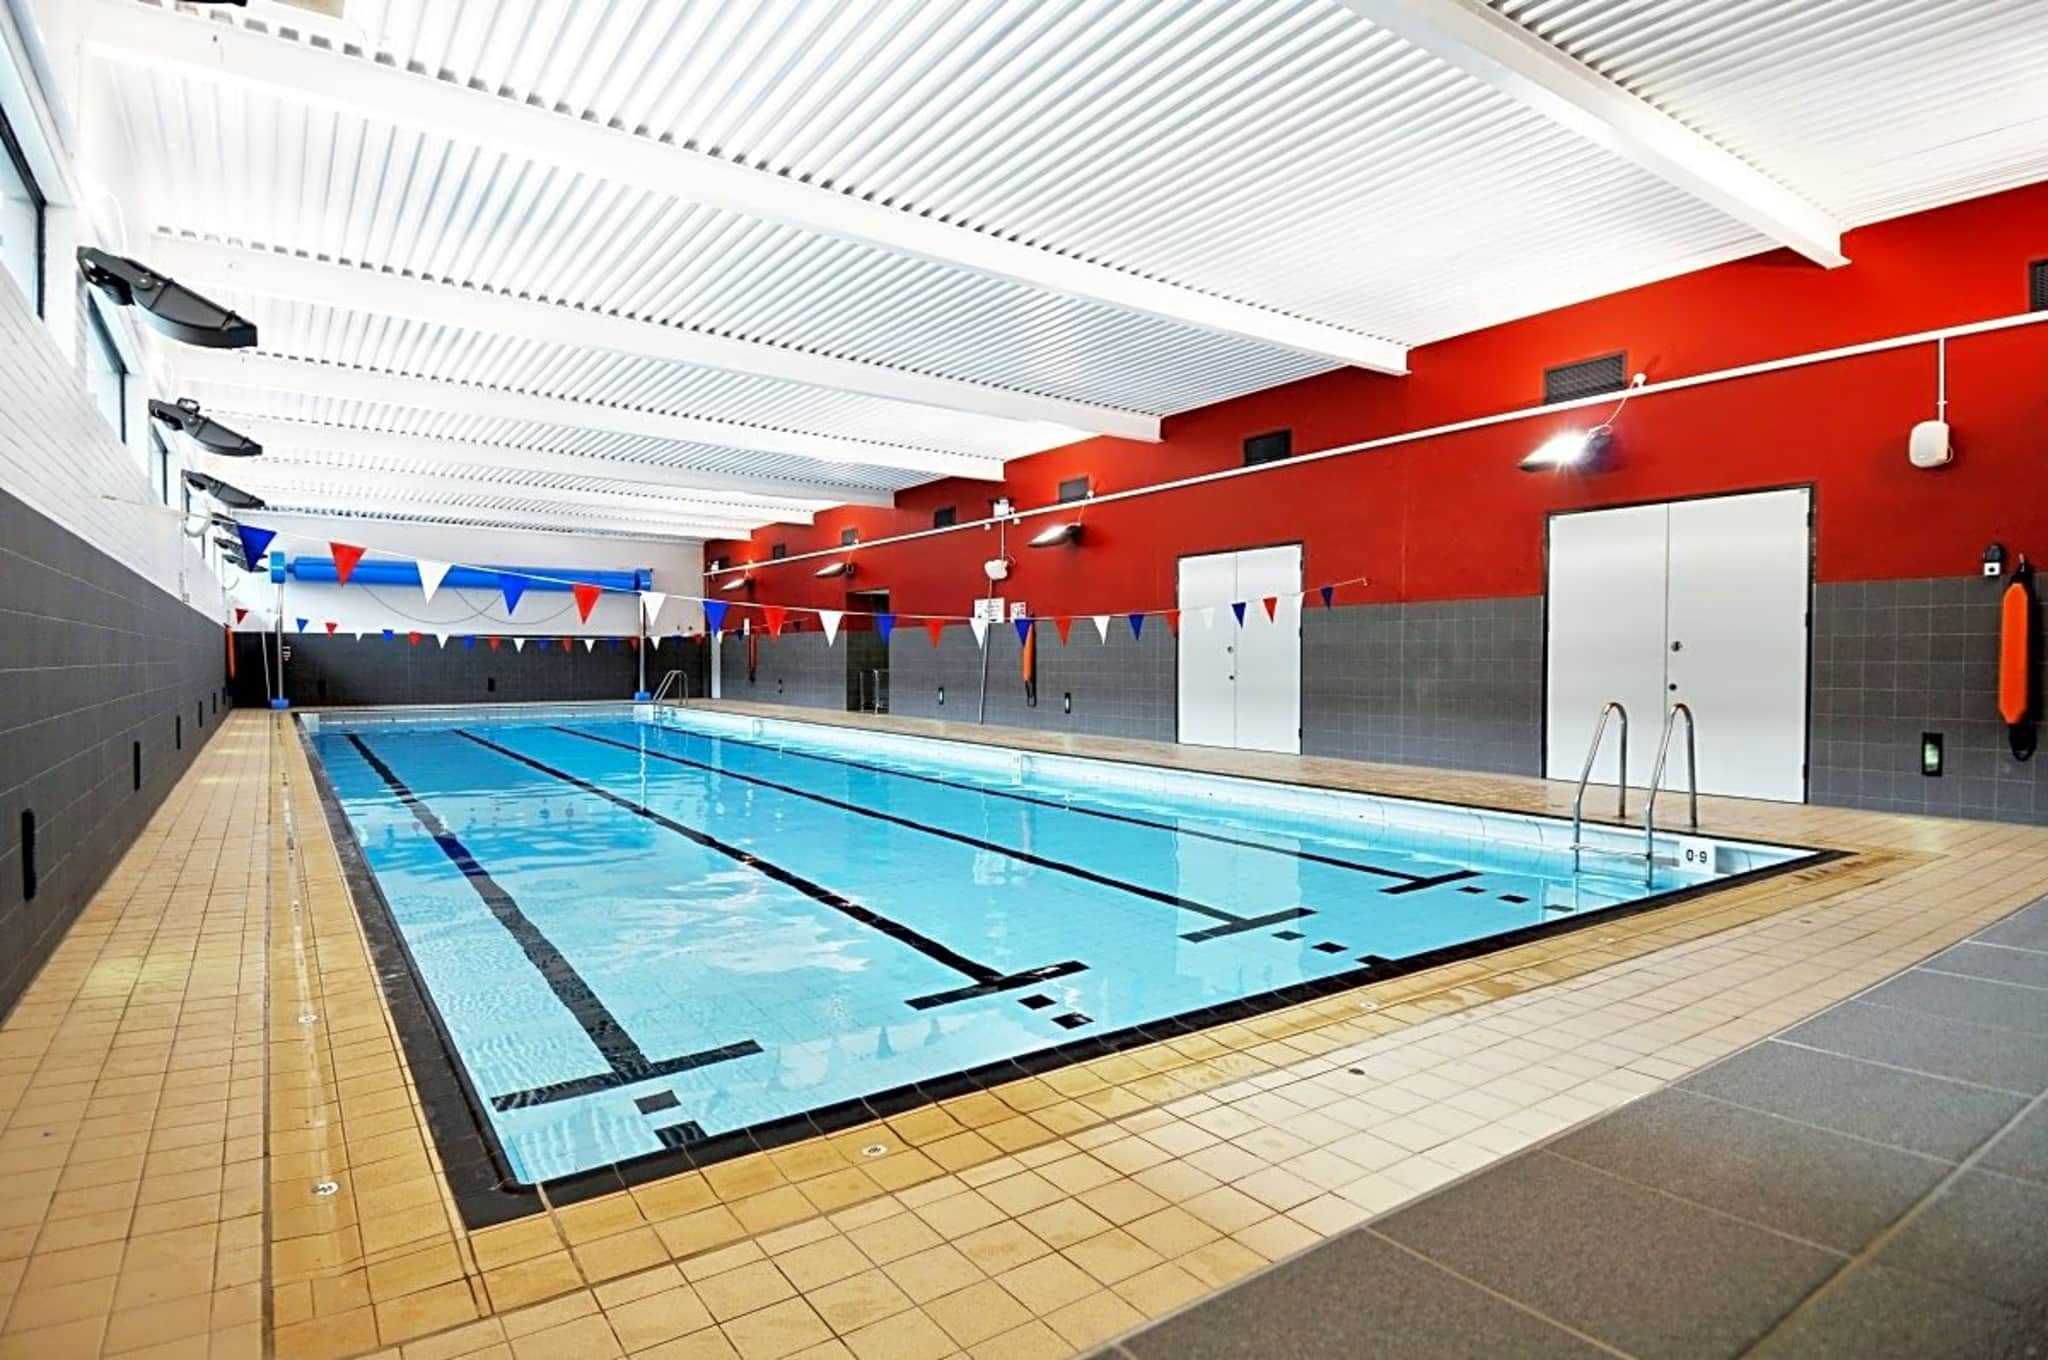 ocll saddleworth pool leisure centre greater manchester movegb